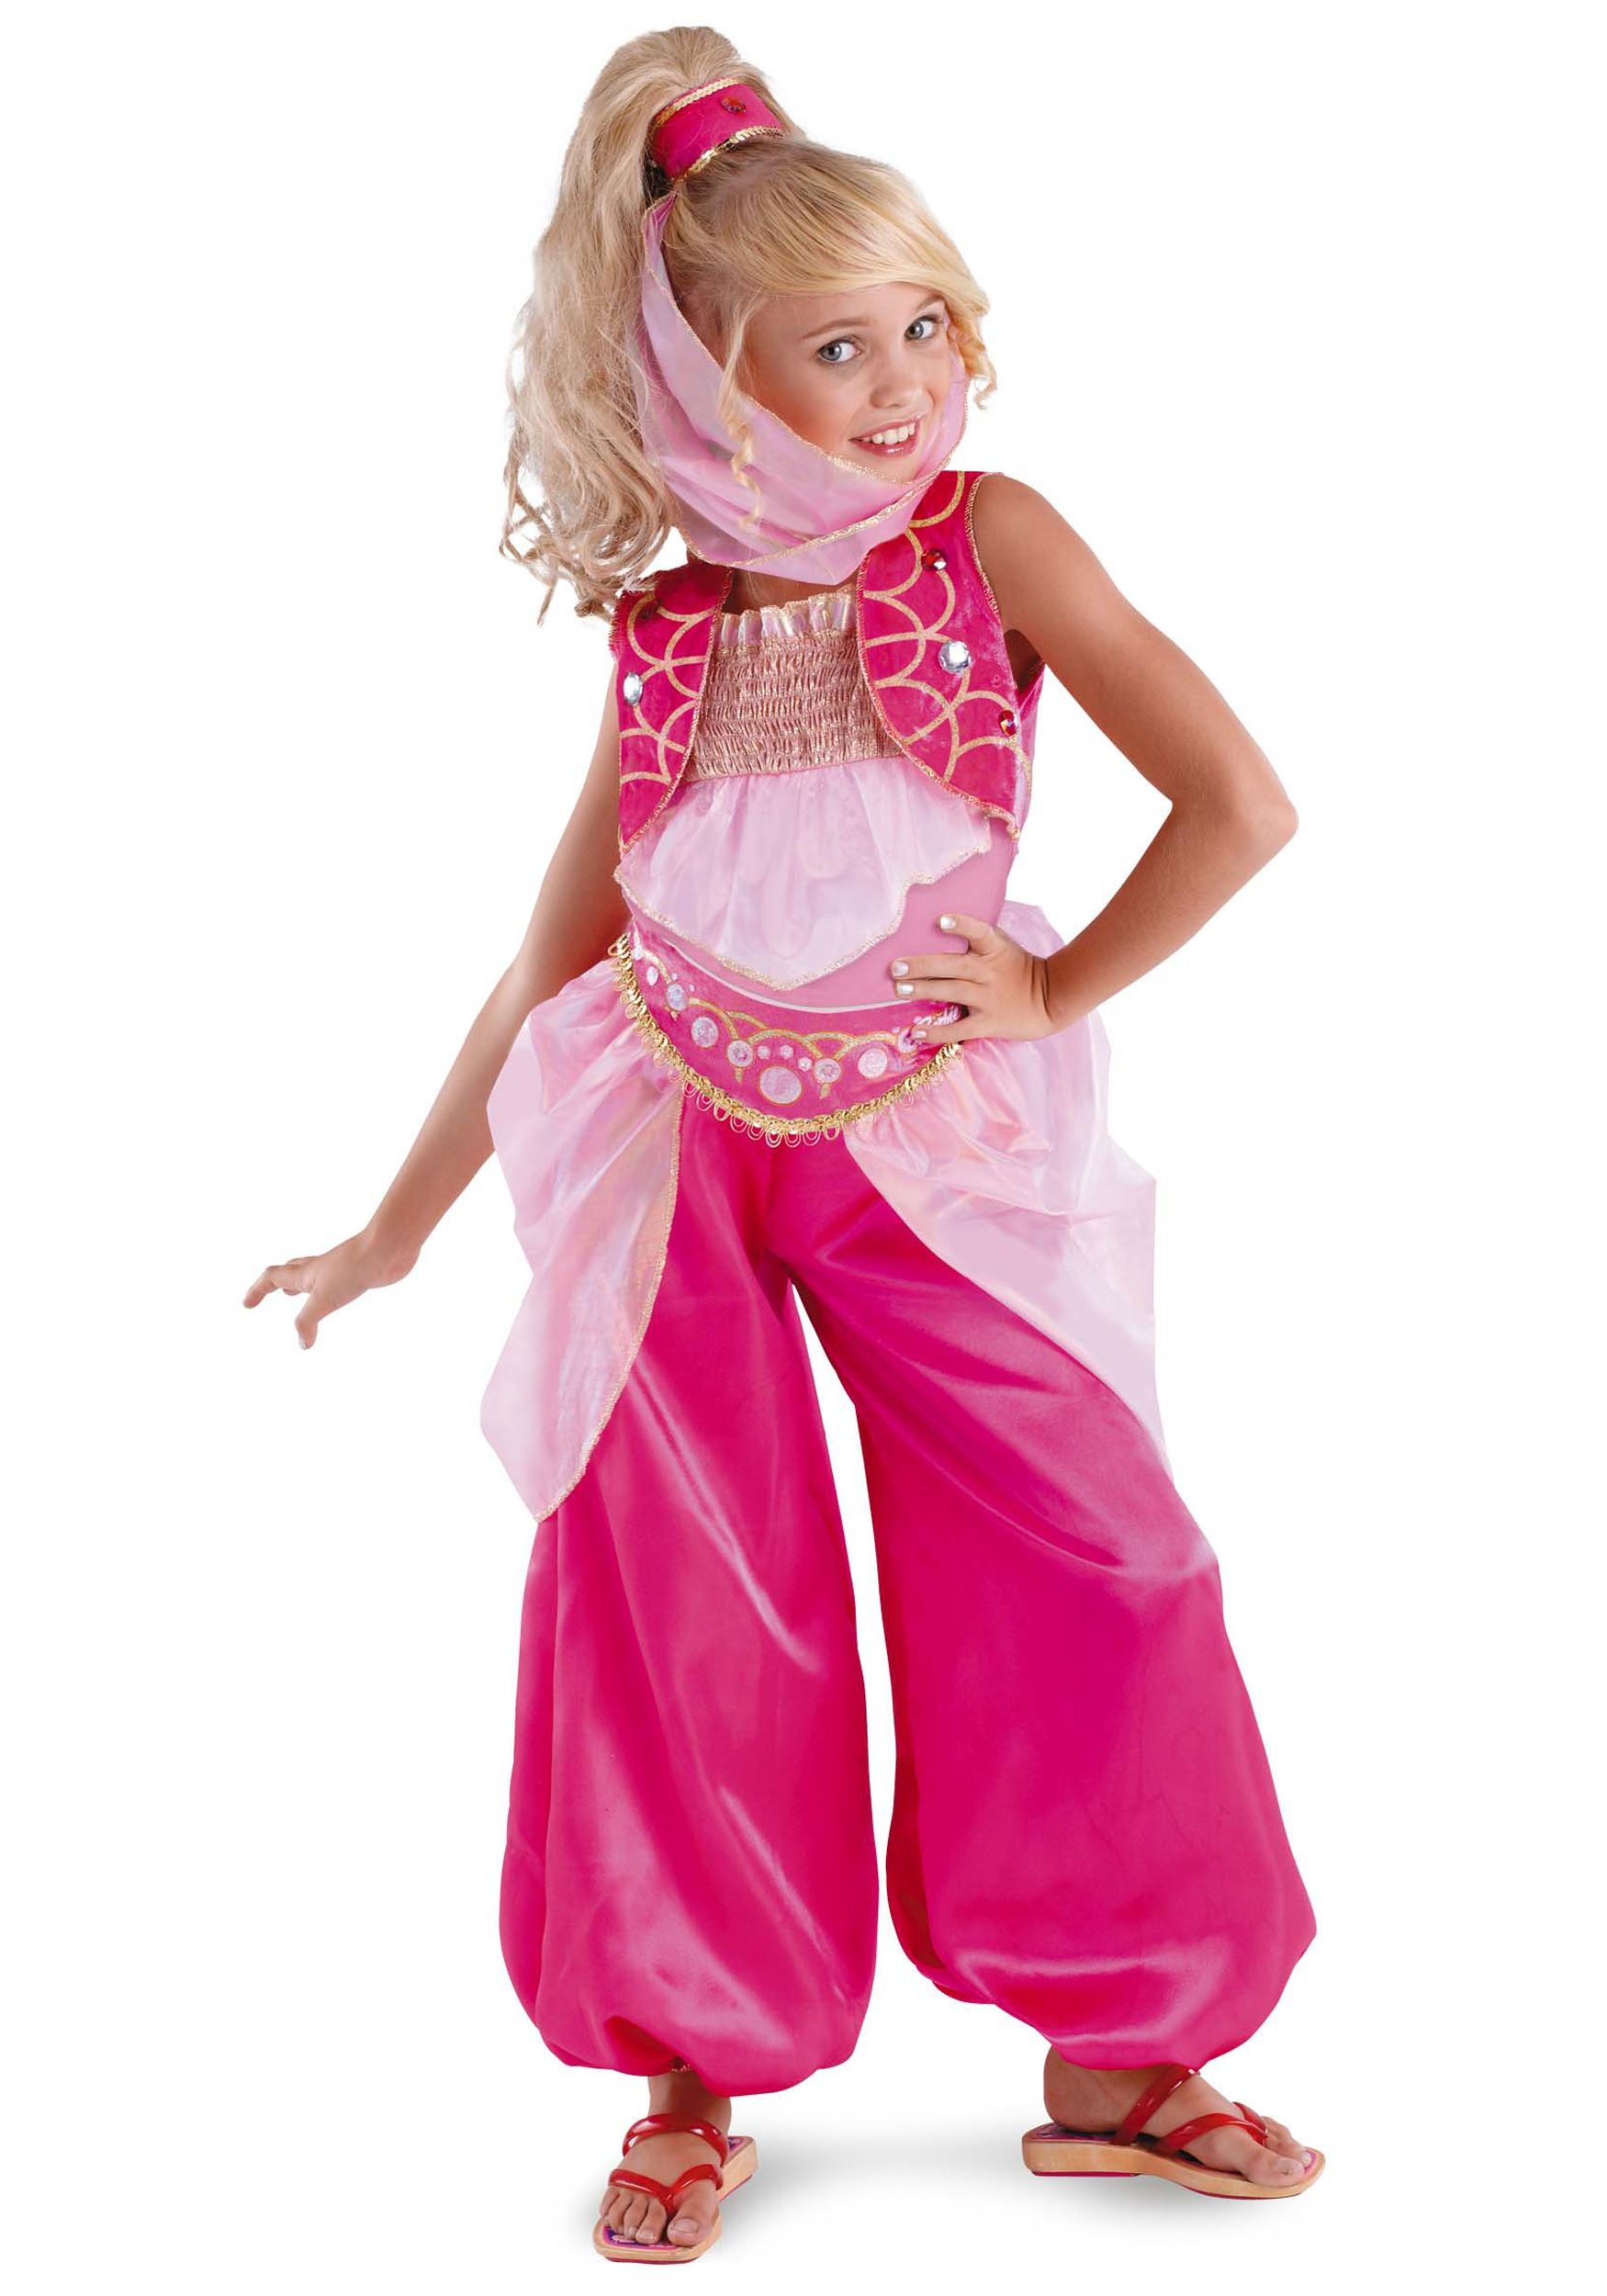 Image detail for -Costume Ideas International Costumes Genie Costumes Girls Genie .  sc 1 st  Pinterest & Image detail for -Costume Ideas International Costumes Genie ...